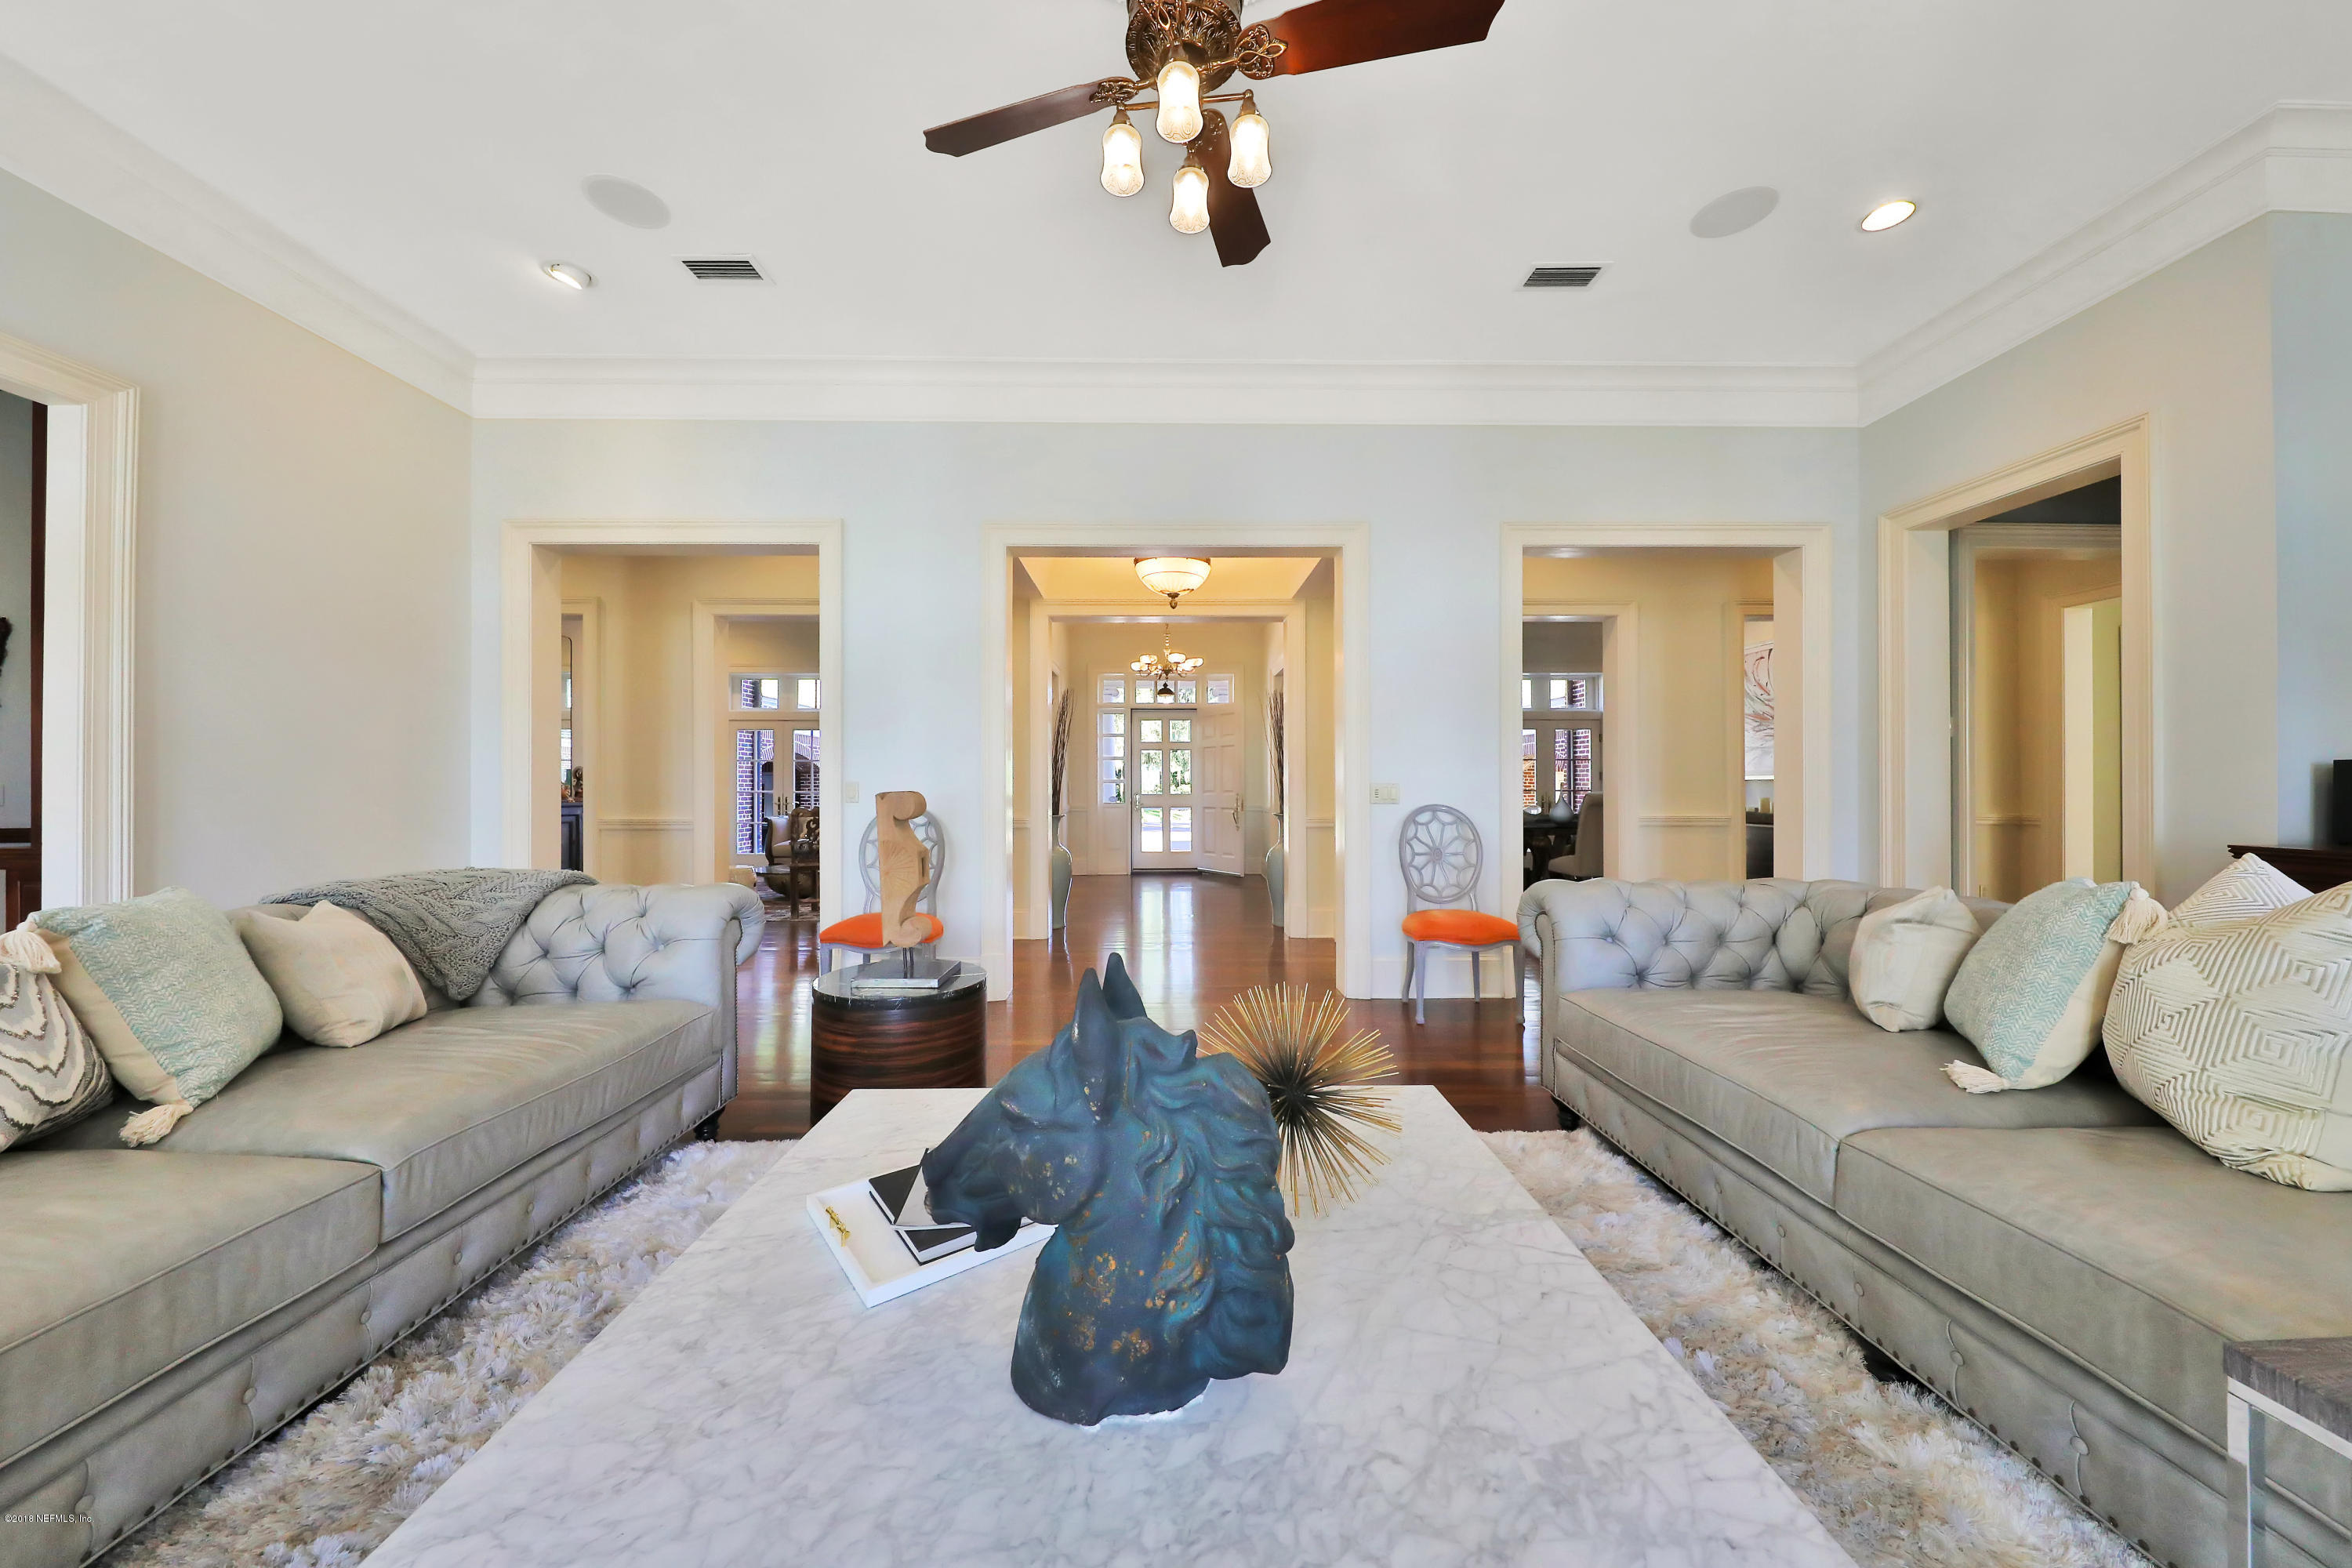 4134 ALHAMBRA, JACKSONVILLE, FLORIDA 32207, 5 Bedrooms Bedrooms, ,6 BathroomsBathrooms,Residential - single family,For sale,ALHAMBRA,878994